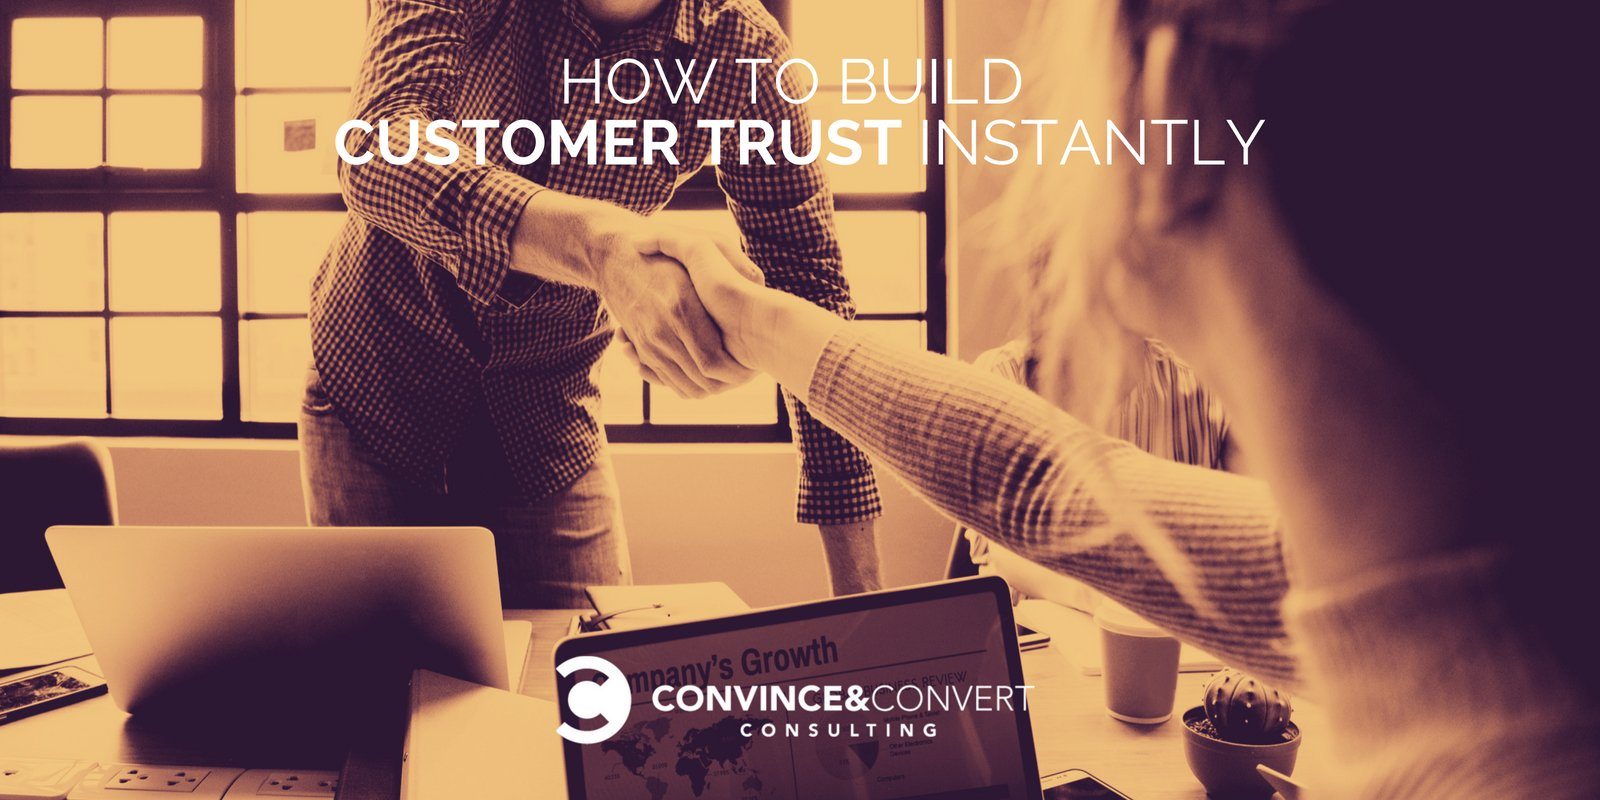 How to Build Customer Trust Instantly